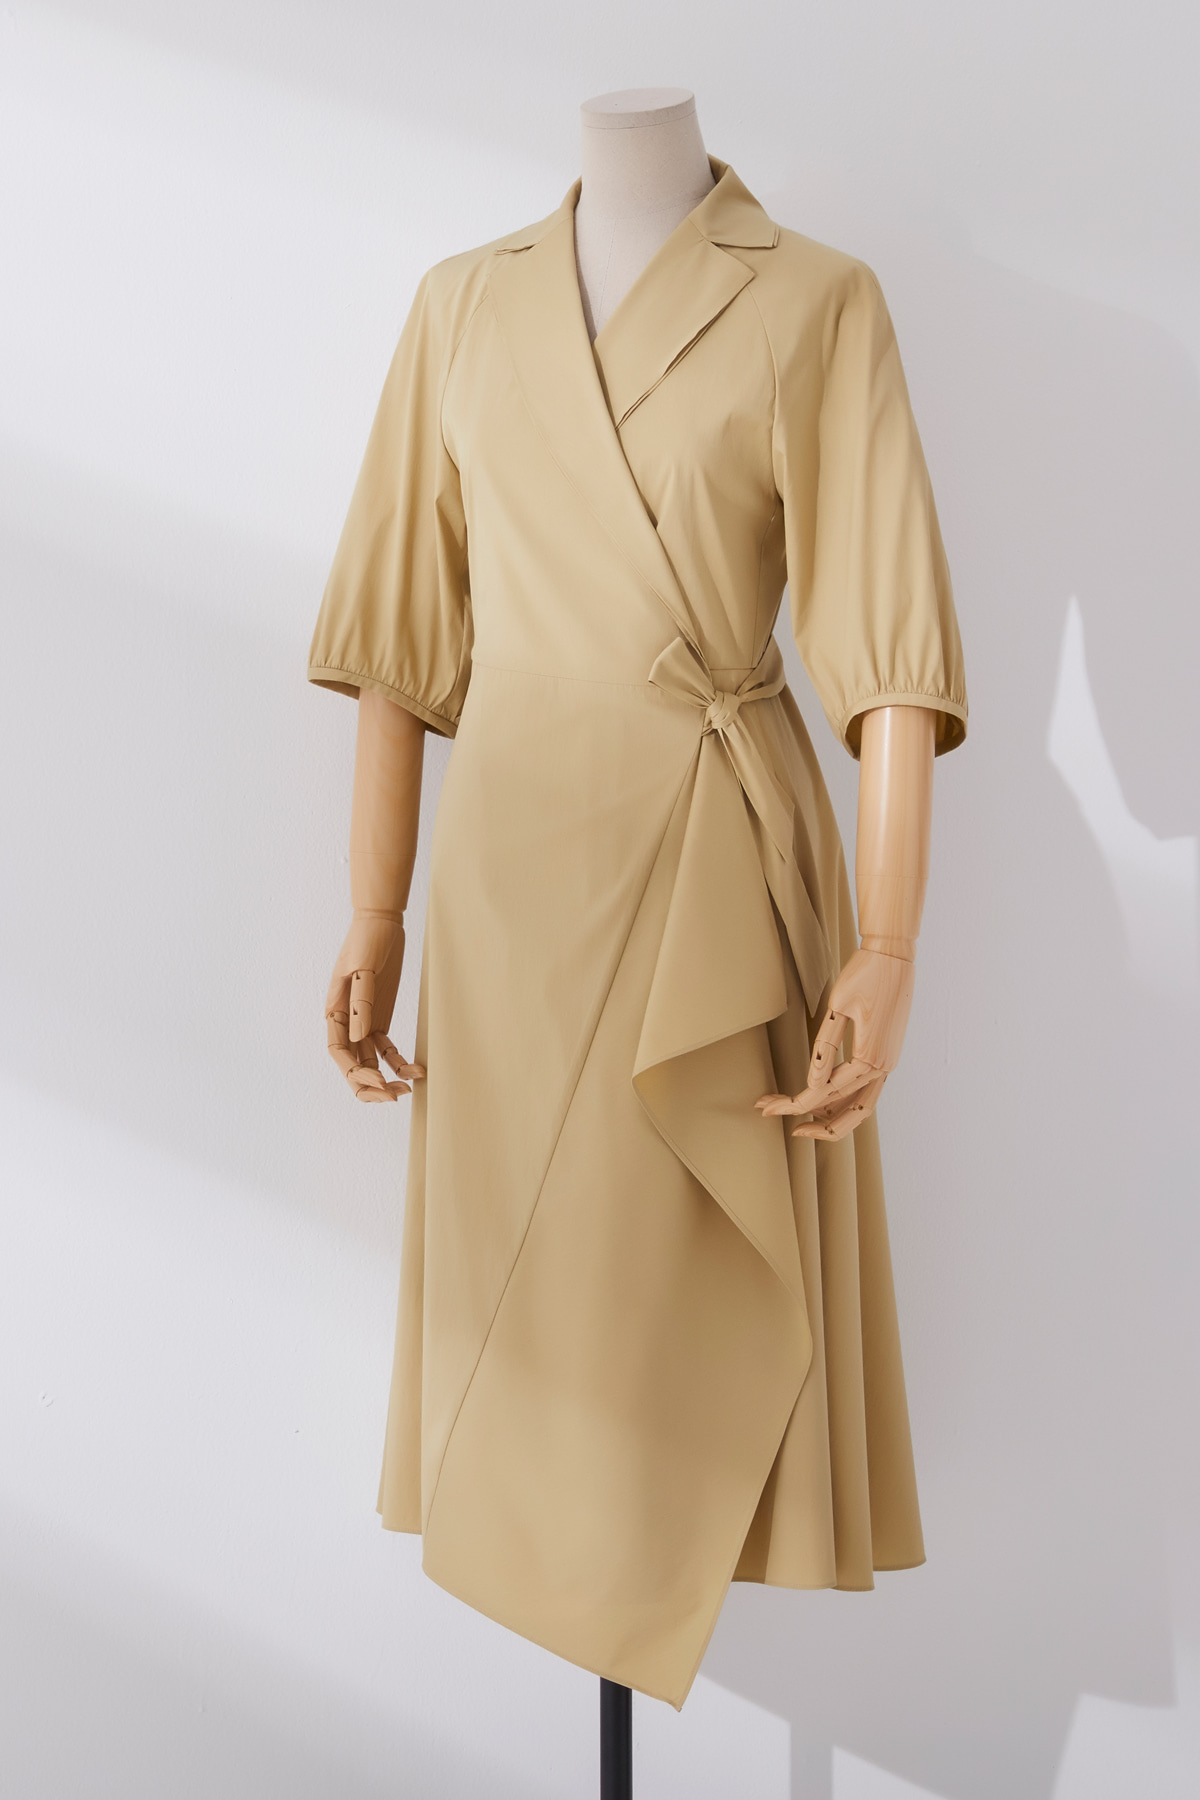 Volumned Sleeve Wrap Dress Champagne Beige